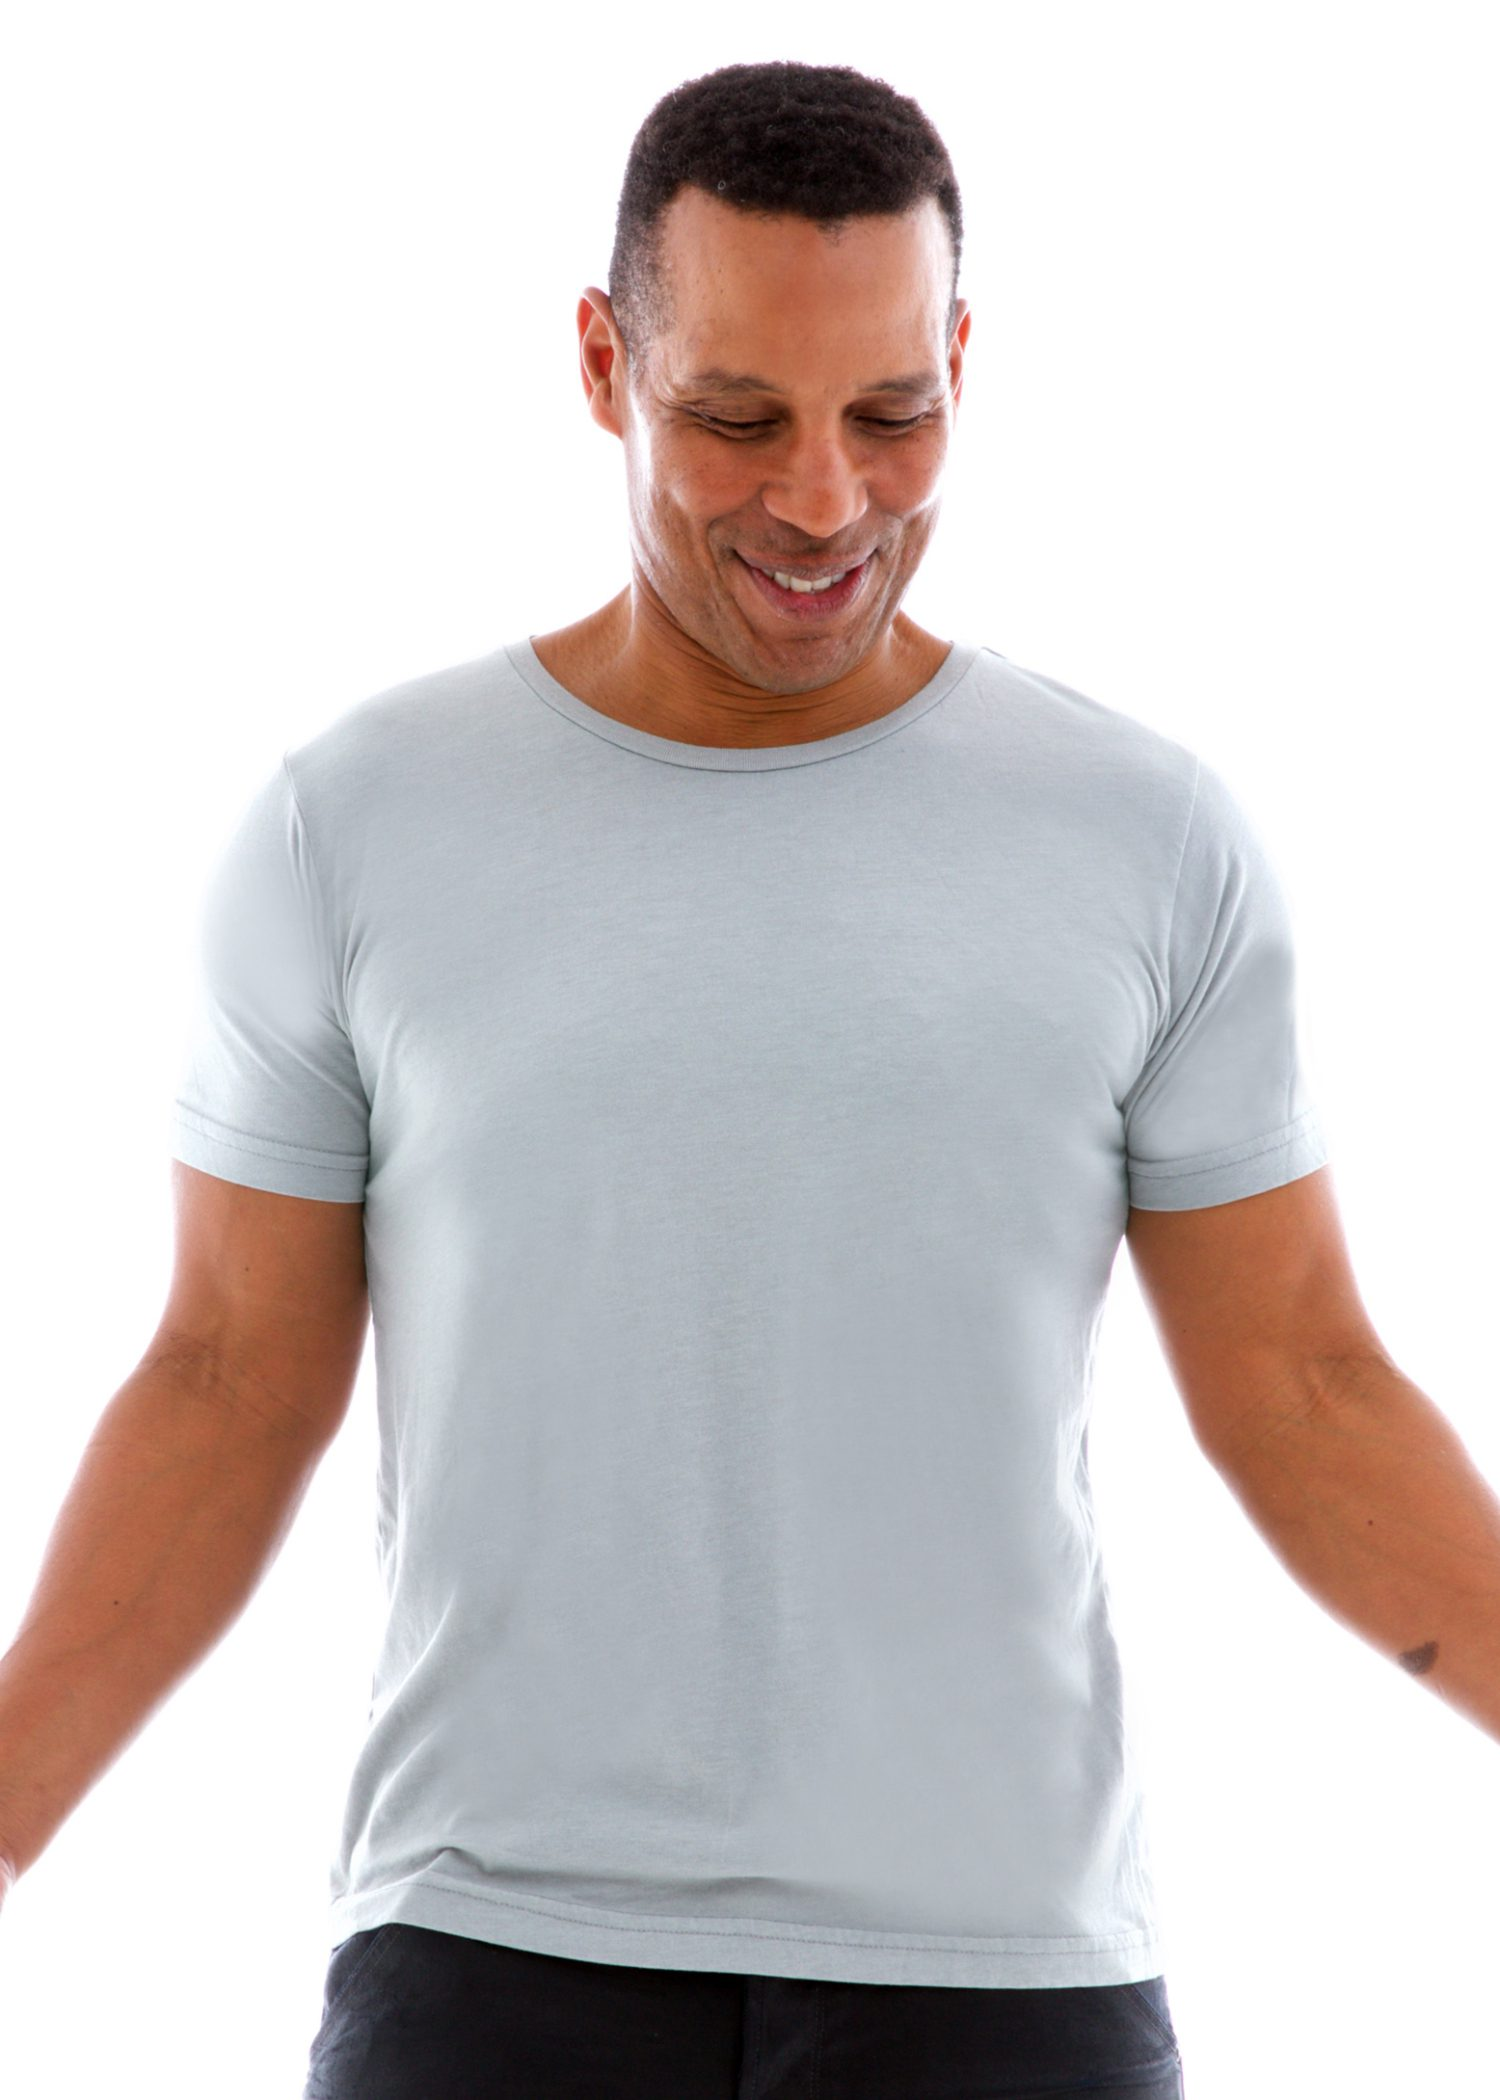 Superfine Jersey Fashion Crew Short Sleeve T-Shirt Front View